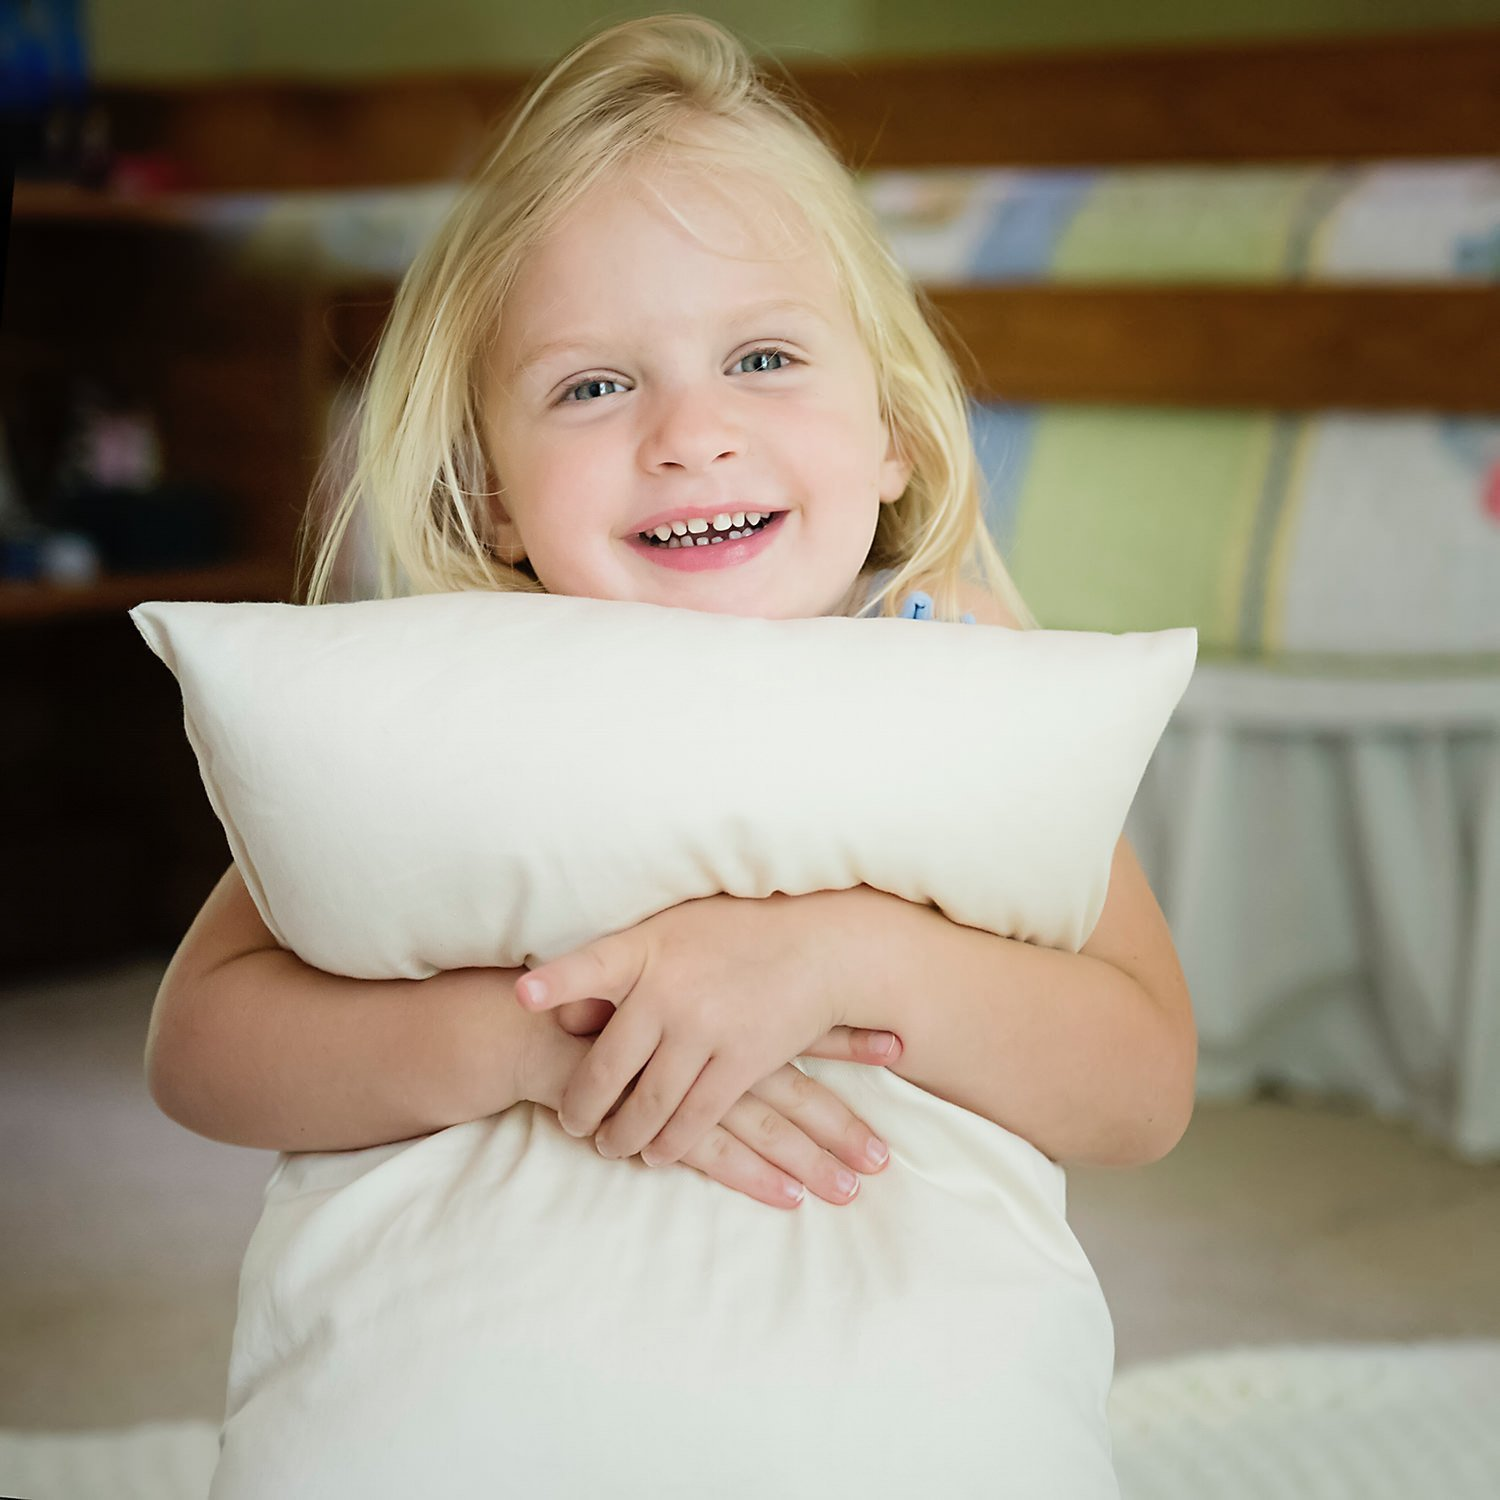 The durability of pillows